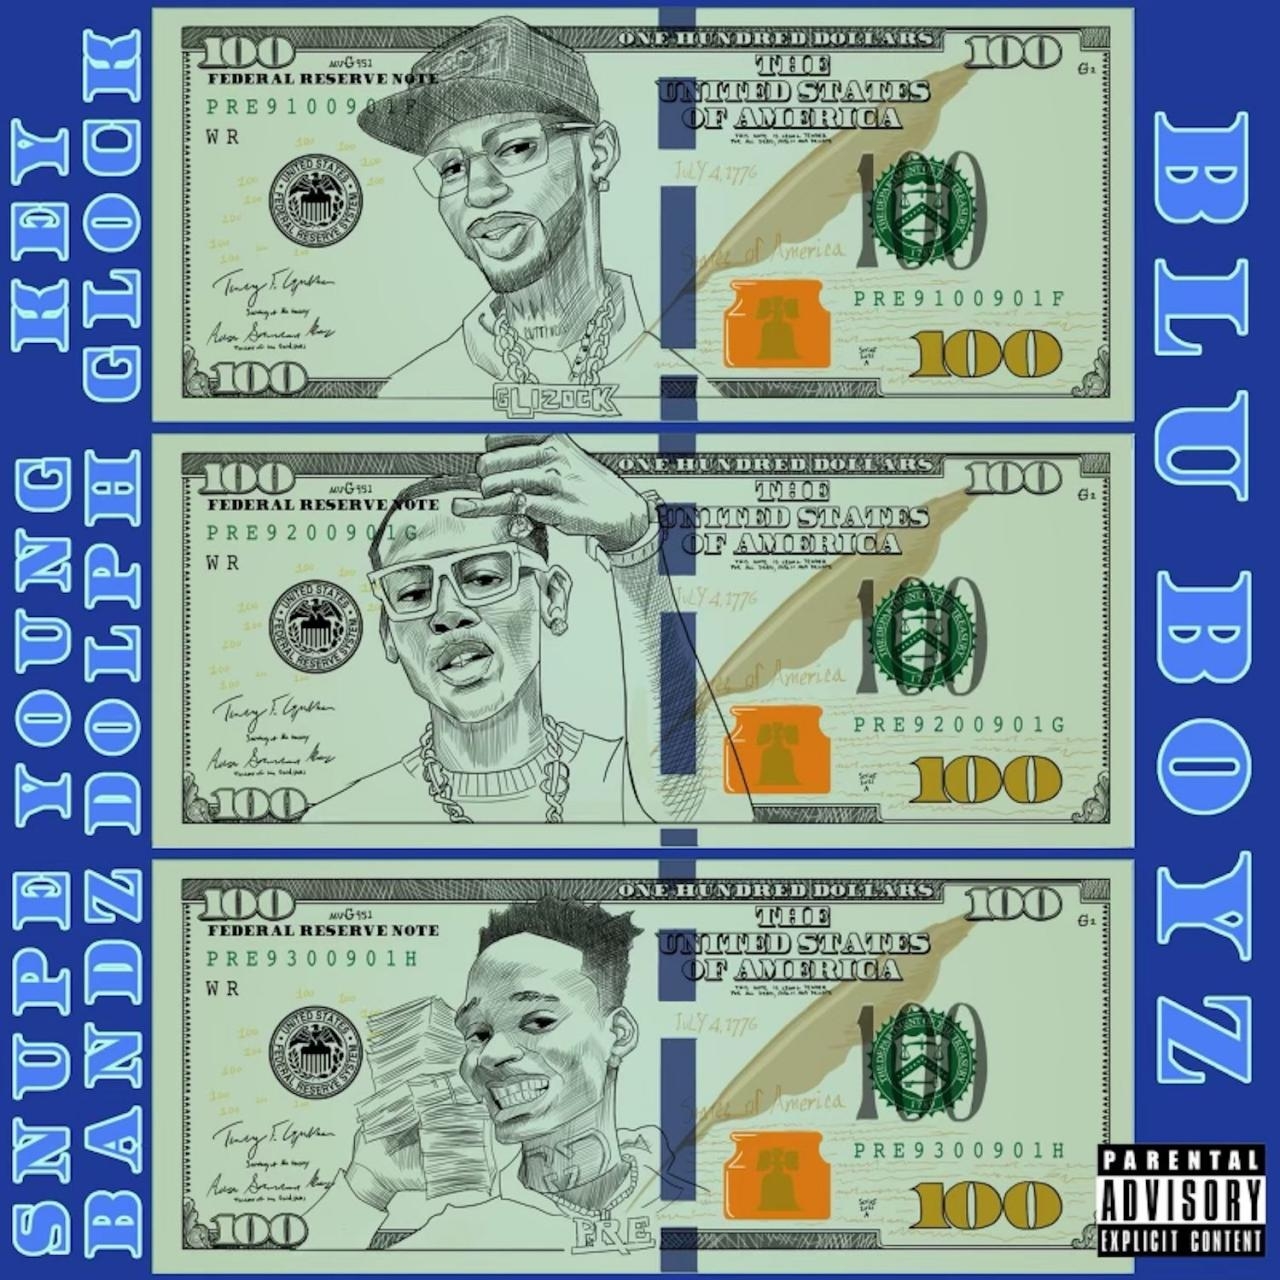 Young Dolph Ft. Snupe Bandz & Key Glock & Paper Route EMPIRE - Blu Boyz